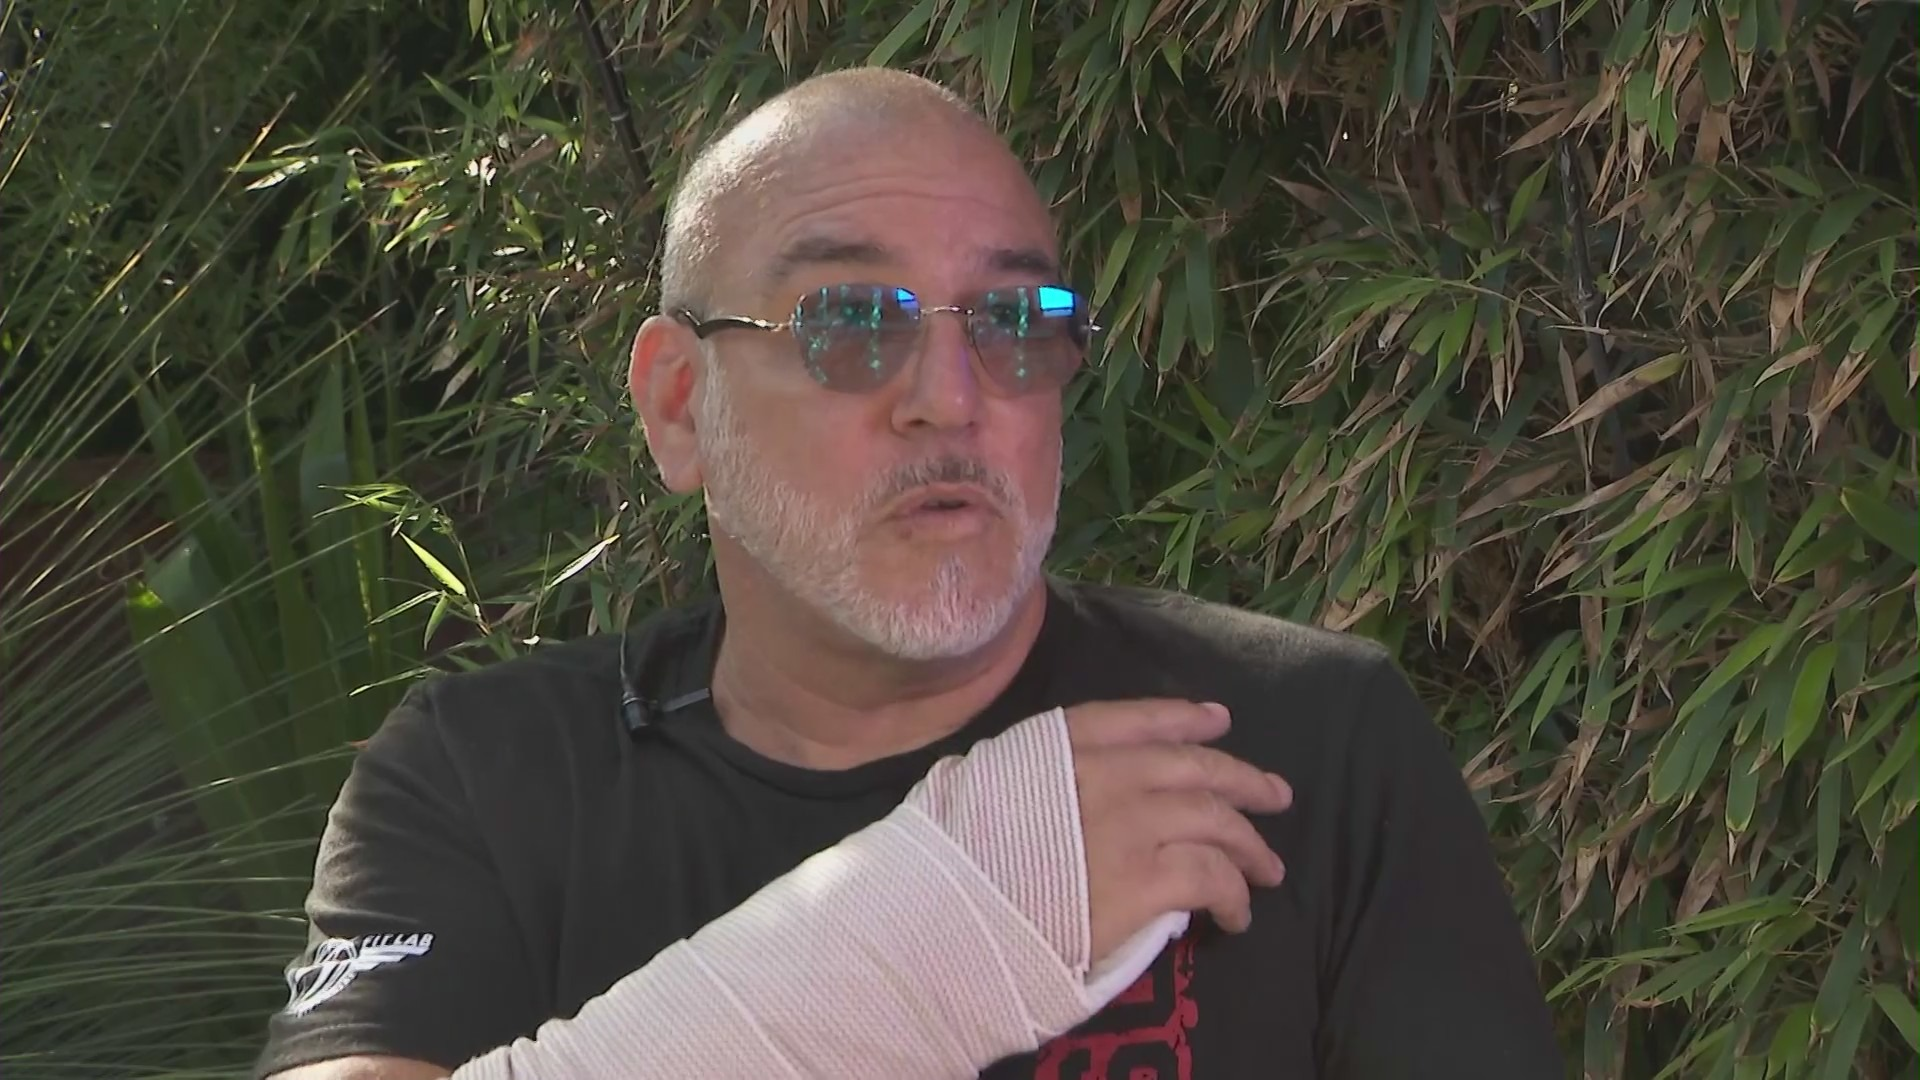 Evan Townsley is recovering from a dog attack on July 29, 2021. (KTLA)